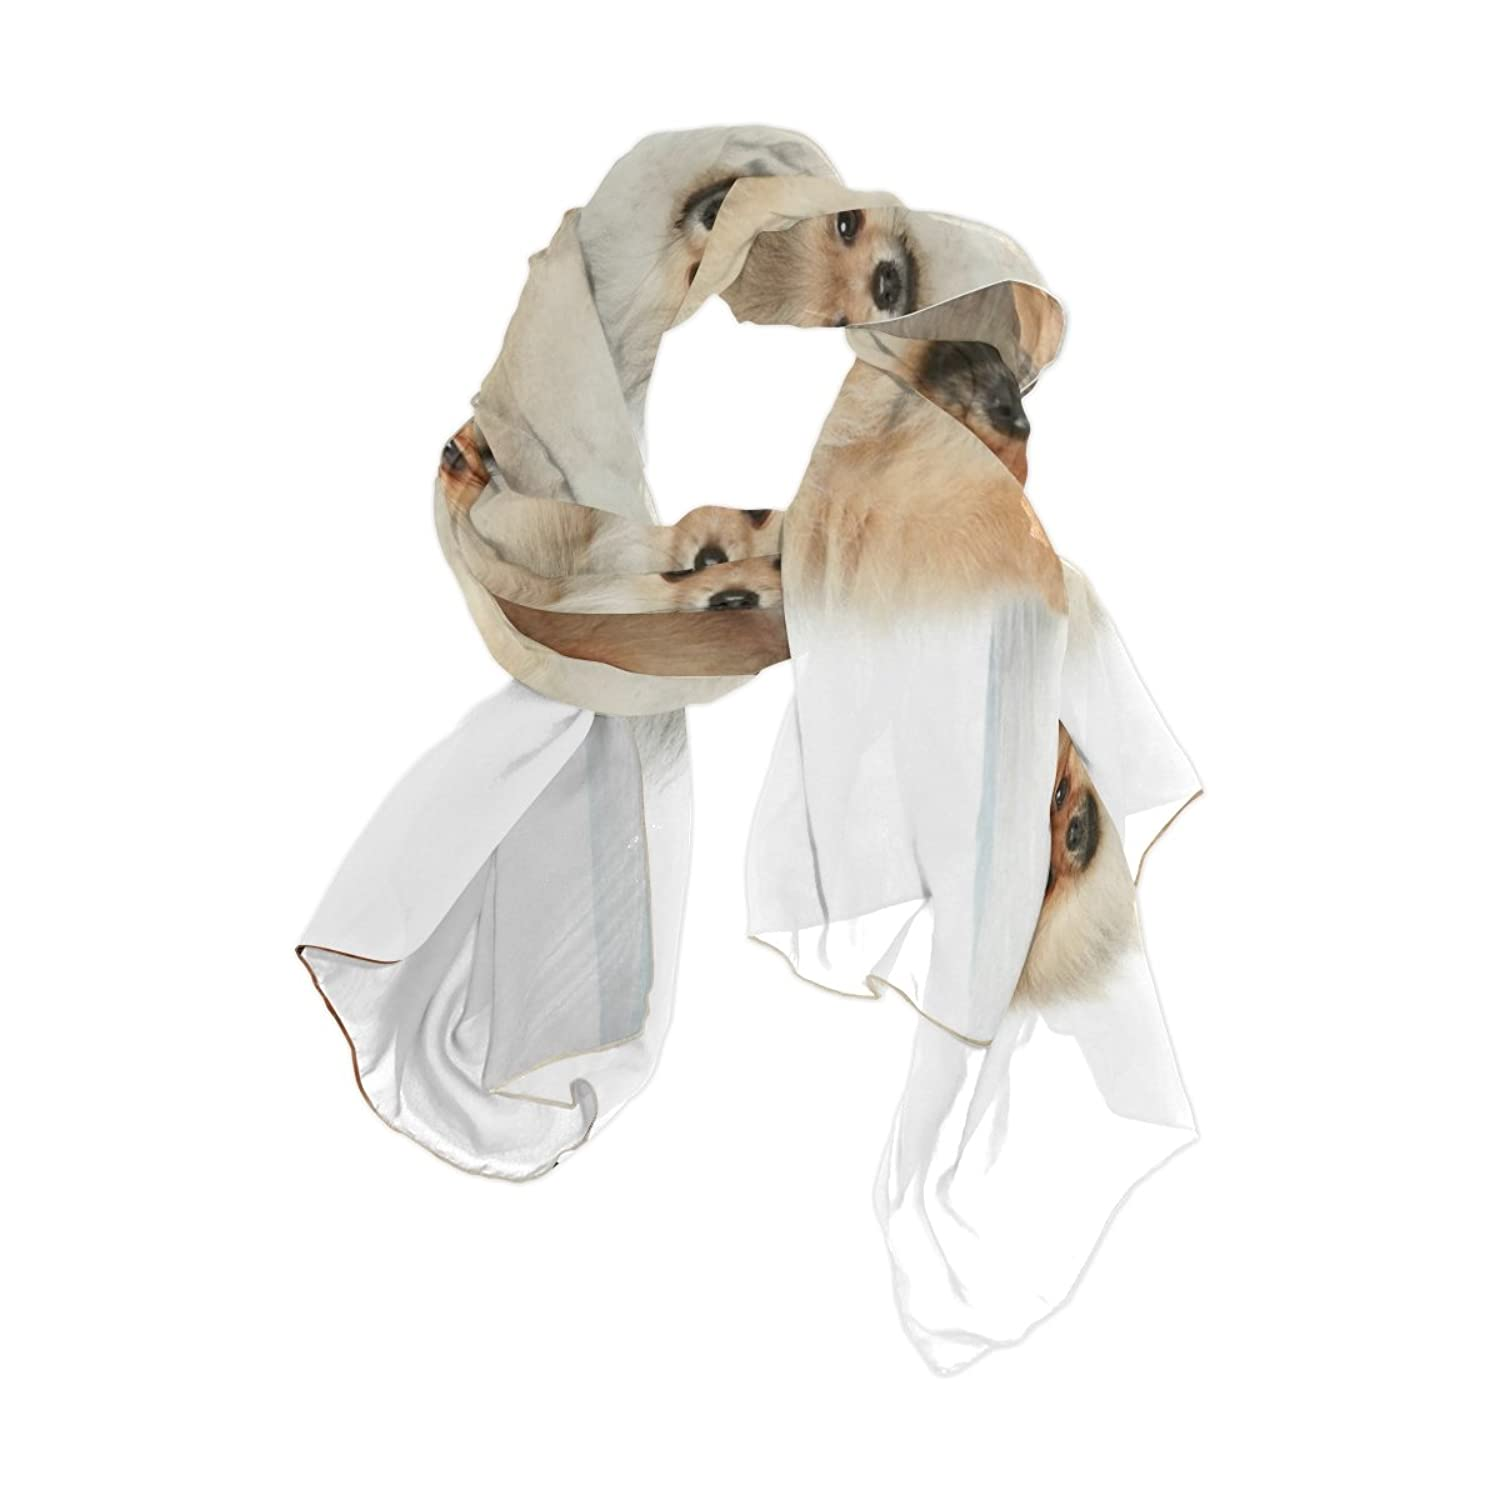 Ablink Horse Hooves Sheer Chiffon Scarf Various Style Accessory 70.86x35.4(inch)